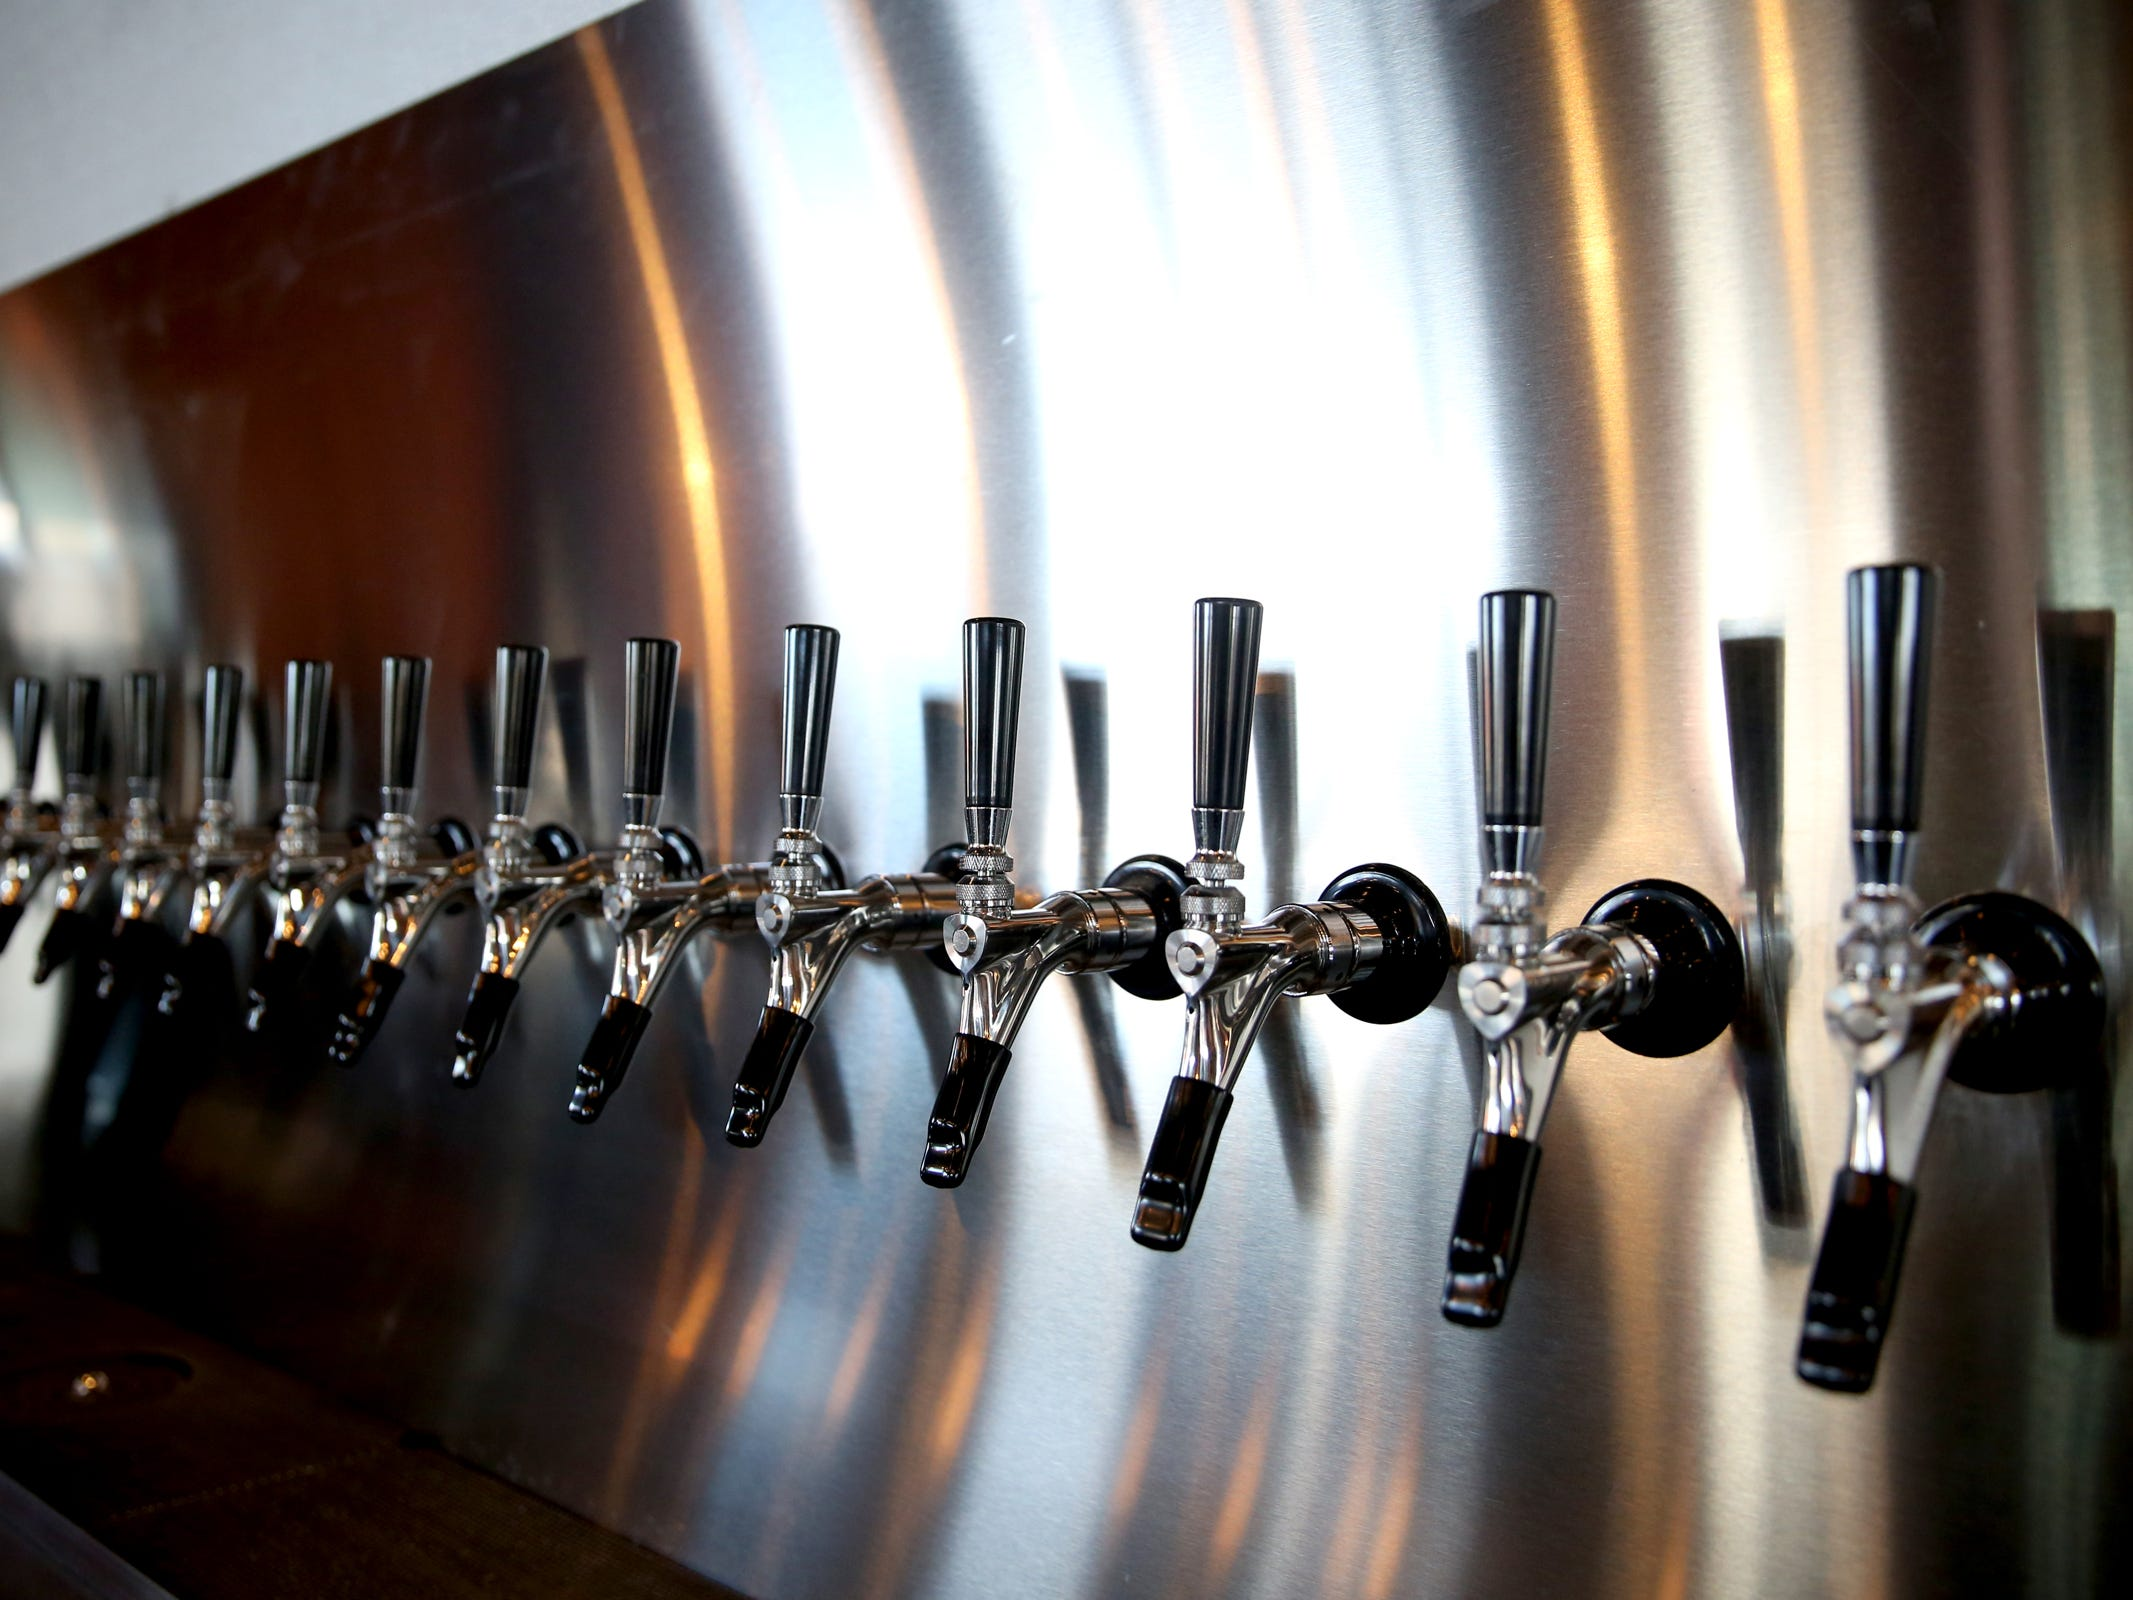 Taps for craft beer, nitro cold brew coffee, hard cider and kombucha at The Yard Food Park in Salem on Wednesday, Dec. 5, 2018. When it opens, The Yard will essentially be part coffee shop, part bar, part event space, and part food truck food court.